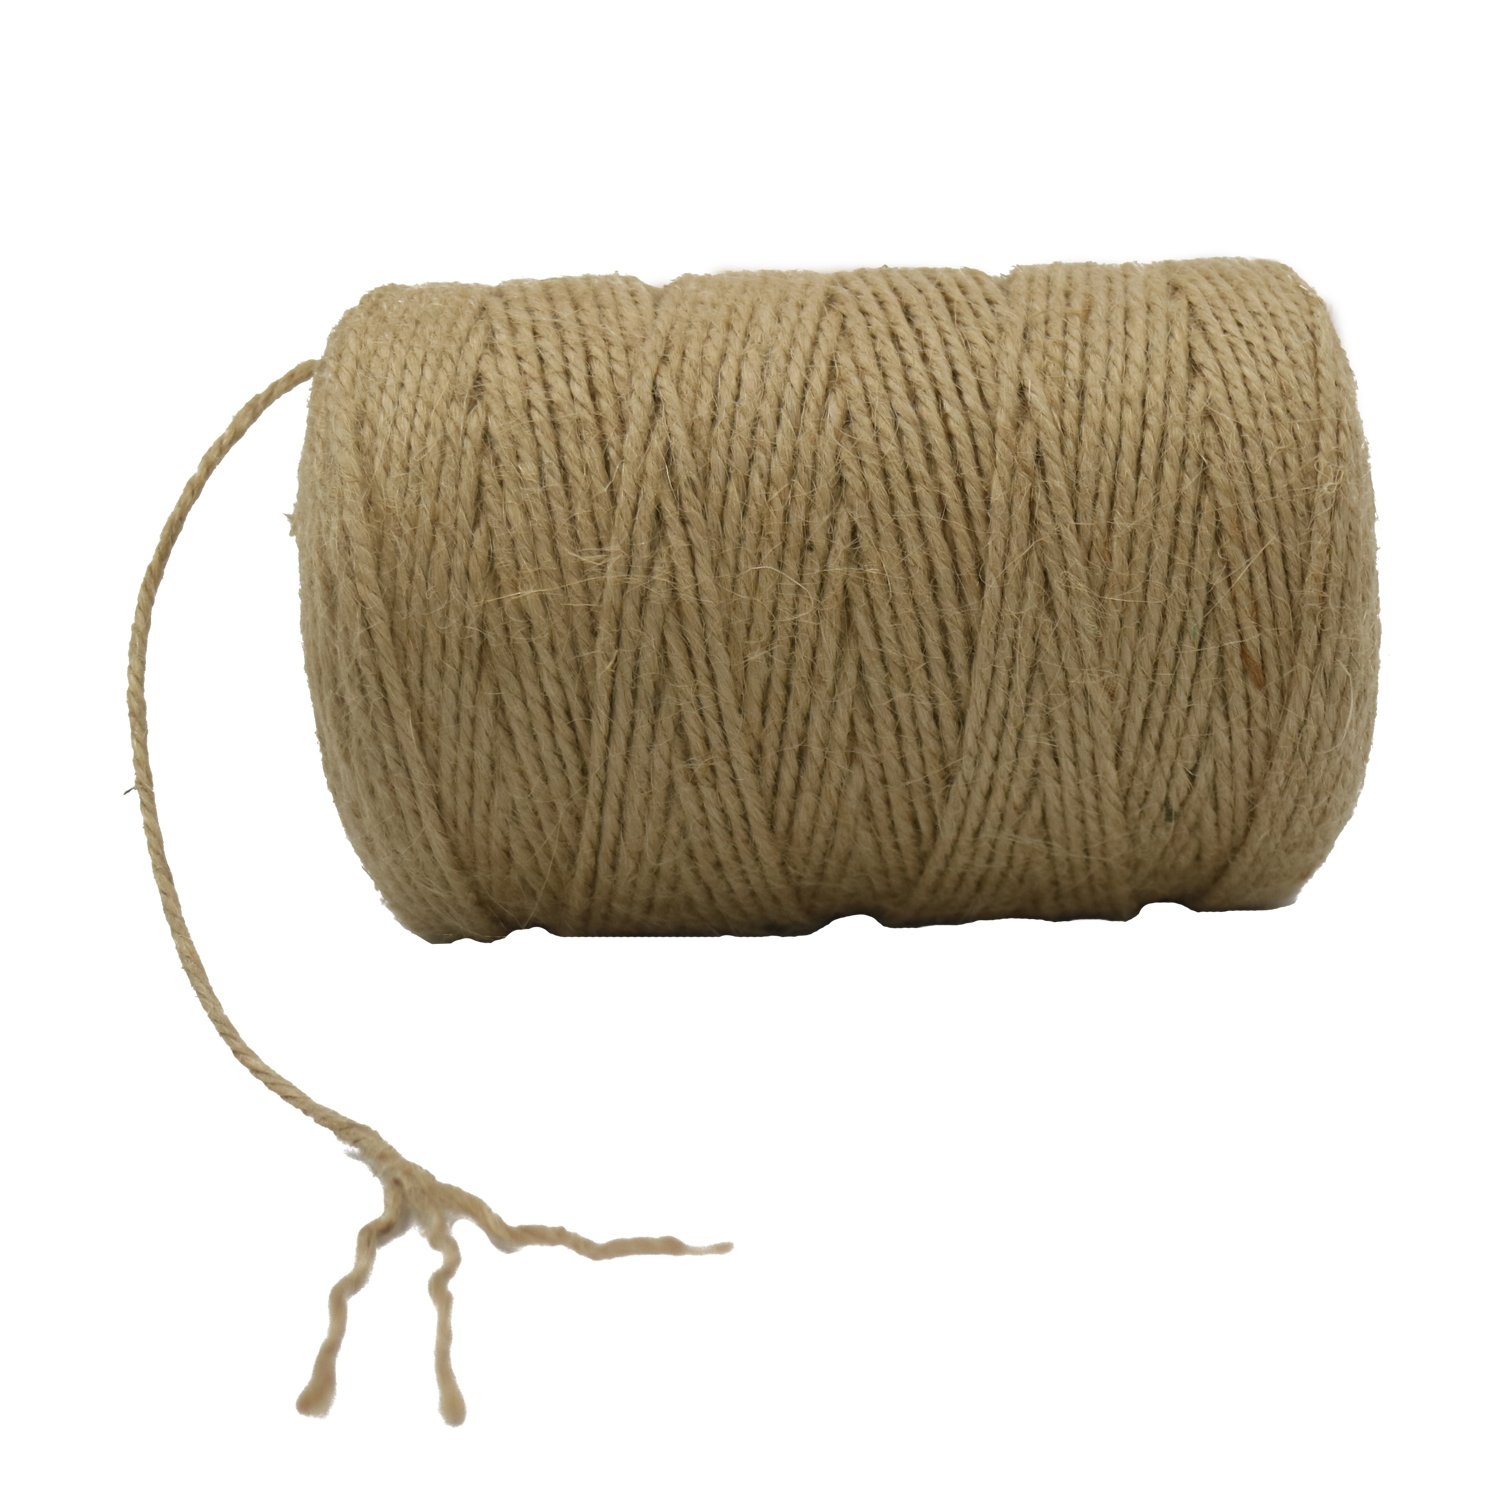 Jute Twine String Natural Ball 984ft / 2mm for Craft Gardening Mason Home Lights Wine Presents Strings Twines Cores Durable for Packing Wrapping Ribbon Christmas Wedding Gift